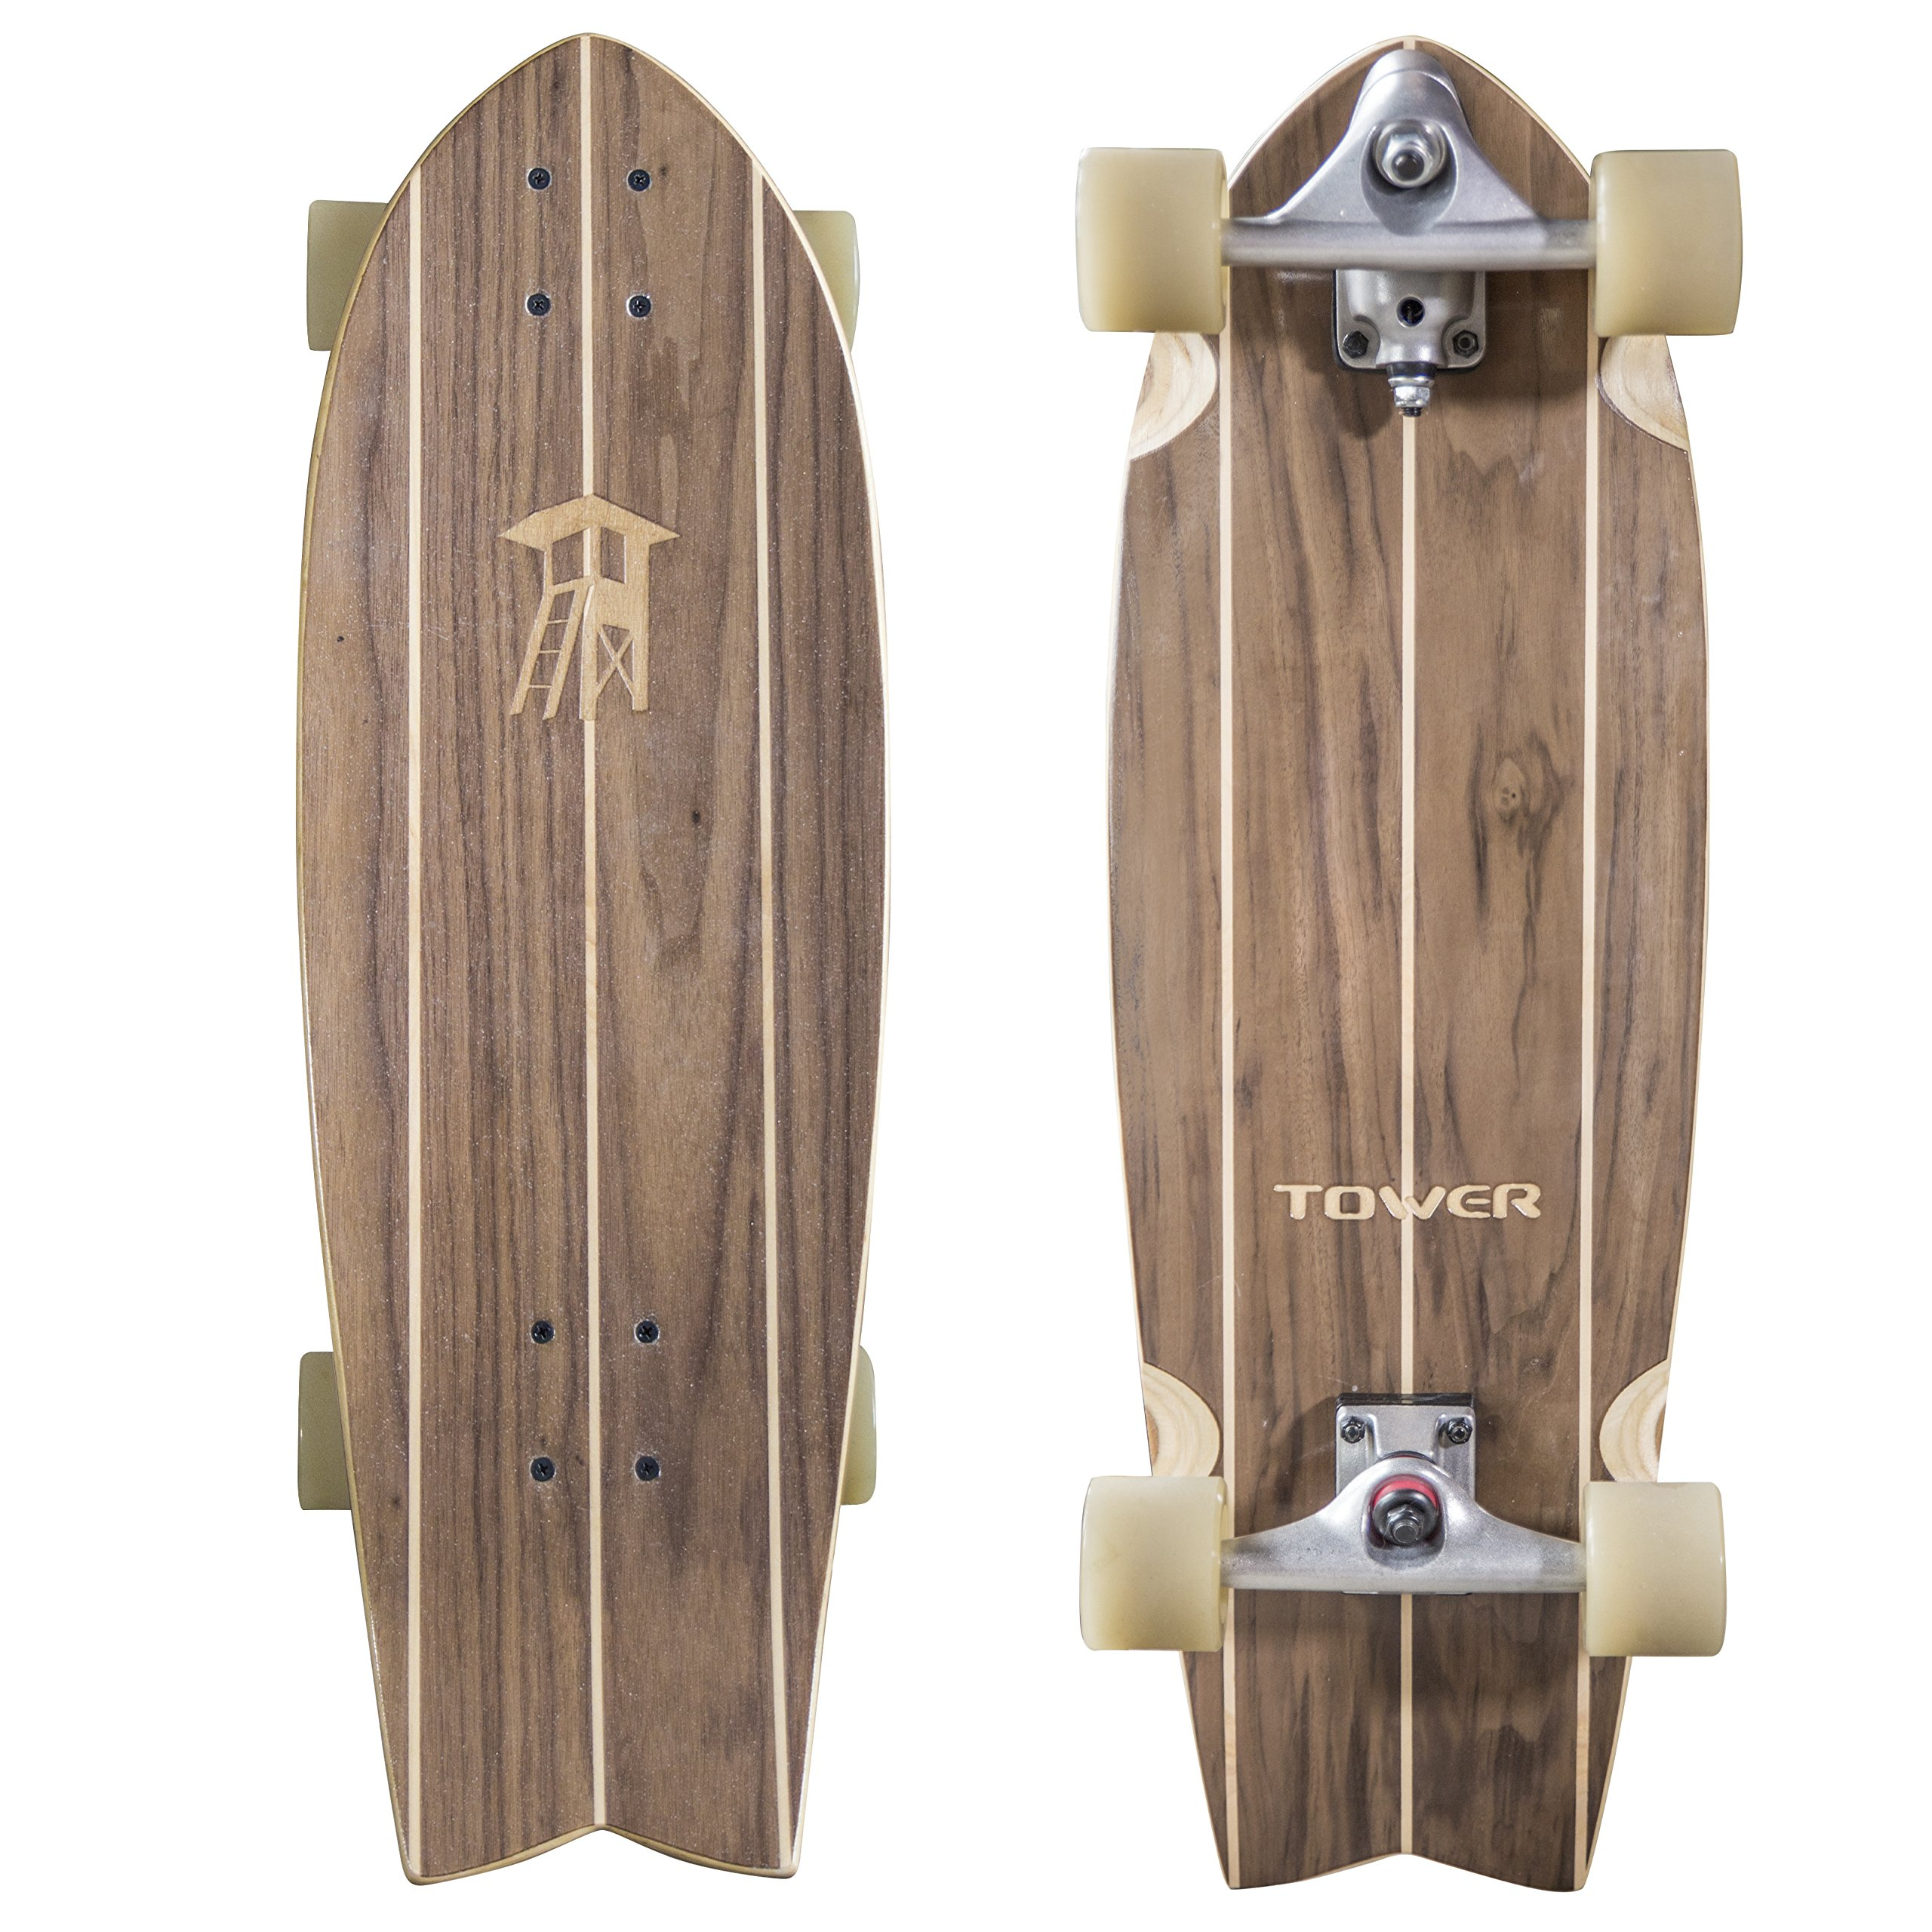 Tower Mini Cruiser Walnut Carving Skateboard